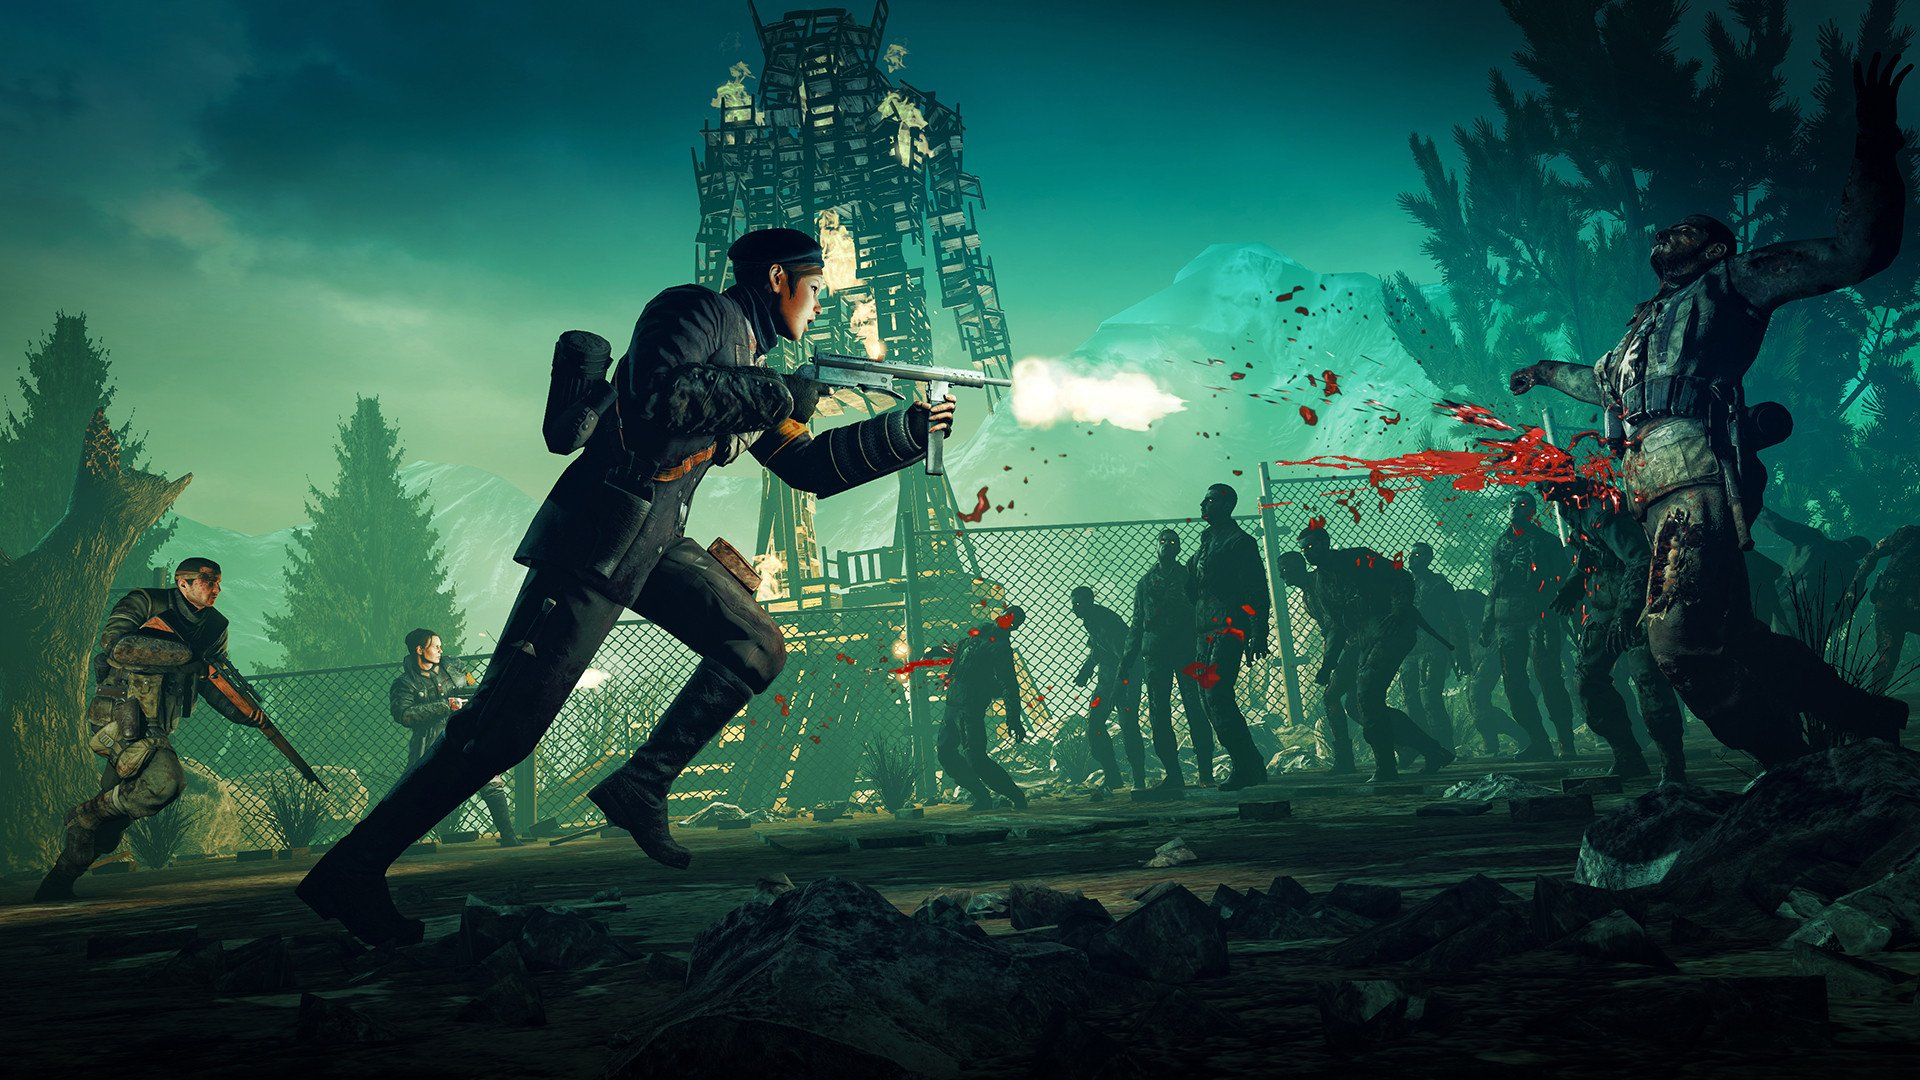 Sniper Elite Nazi Zombie Army Computer Wallpapers Desktop 1920x1080